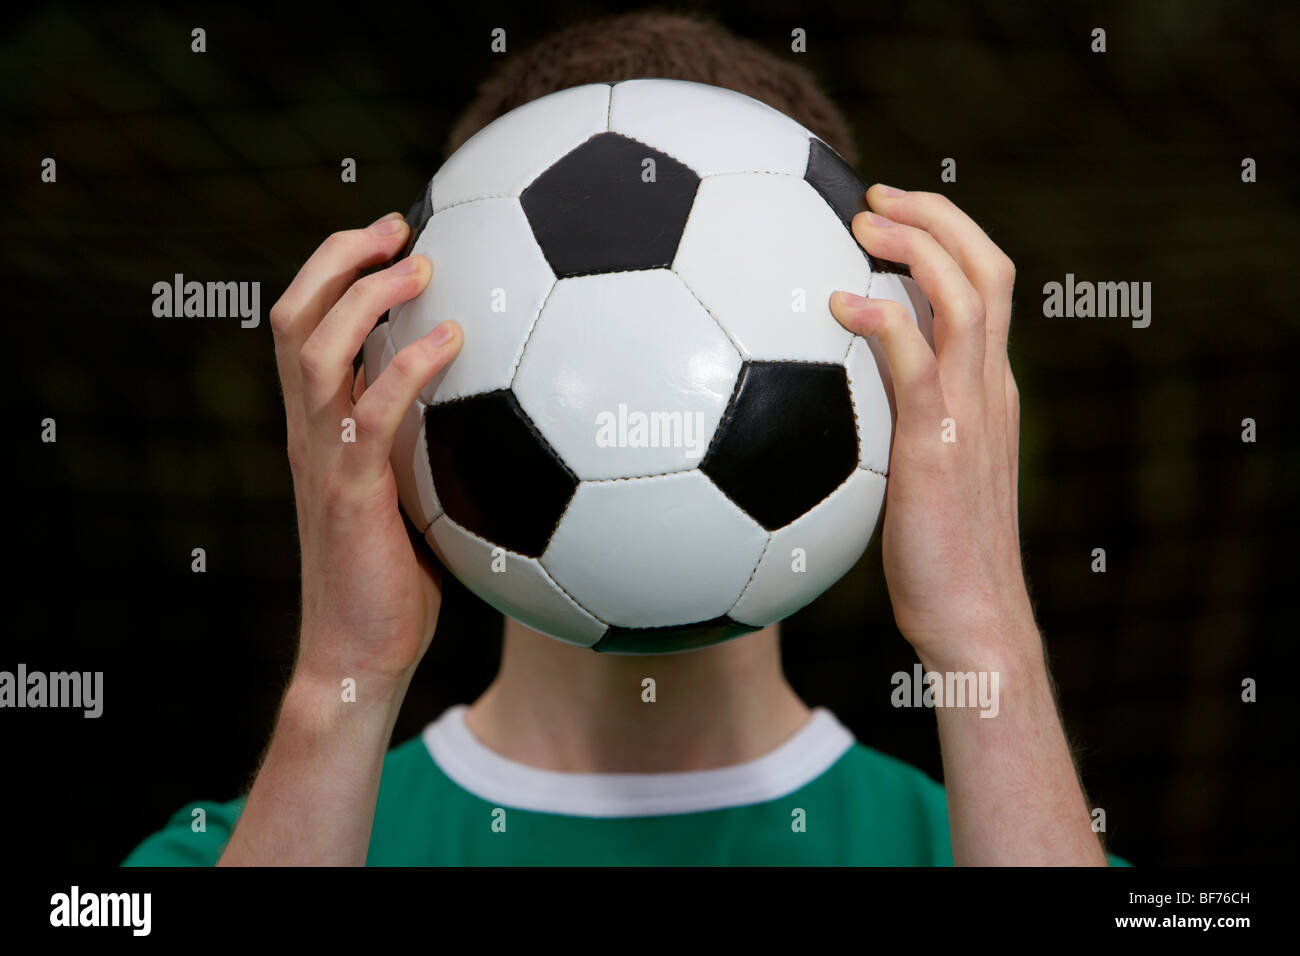 soccer football player holding ball in front of his face - Stock Image